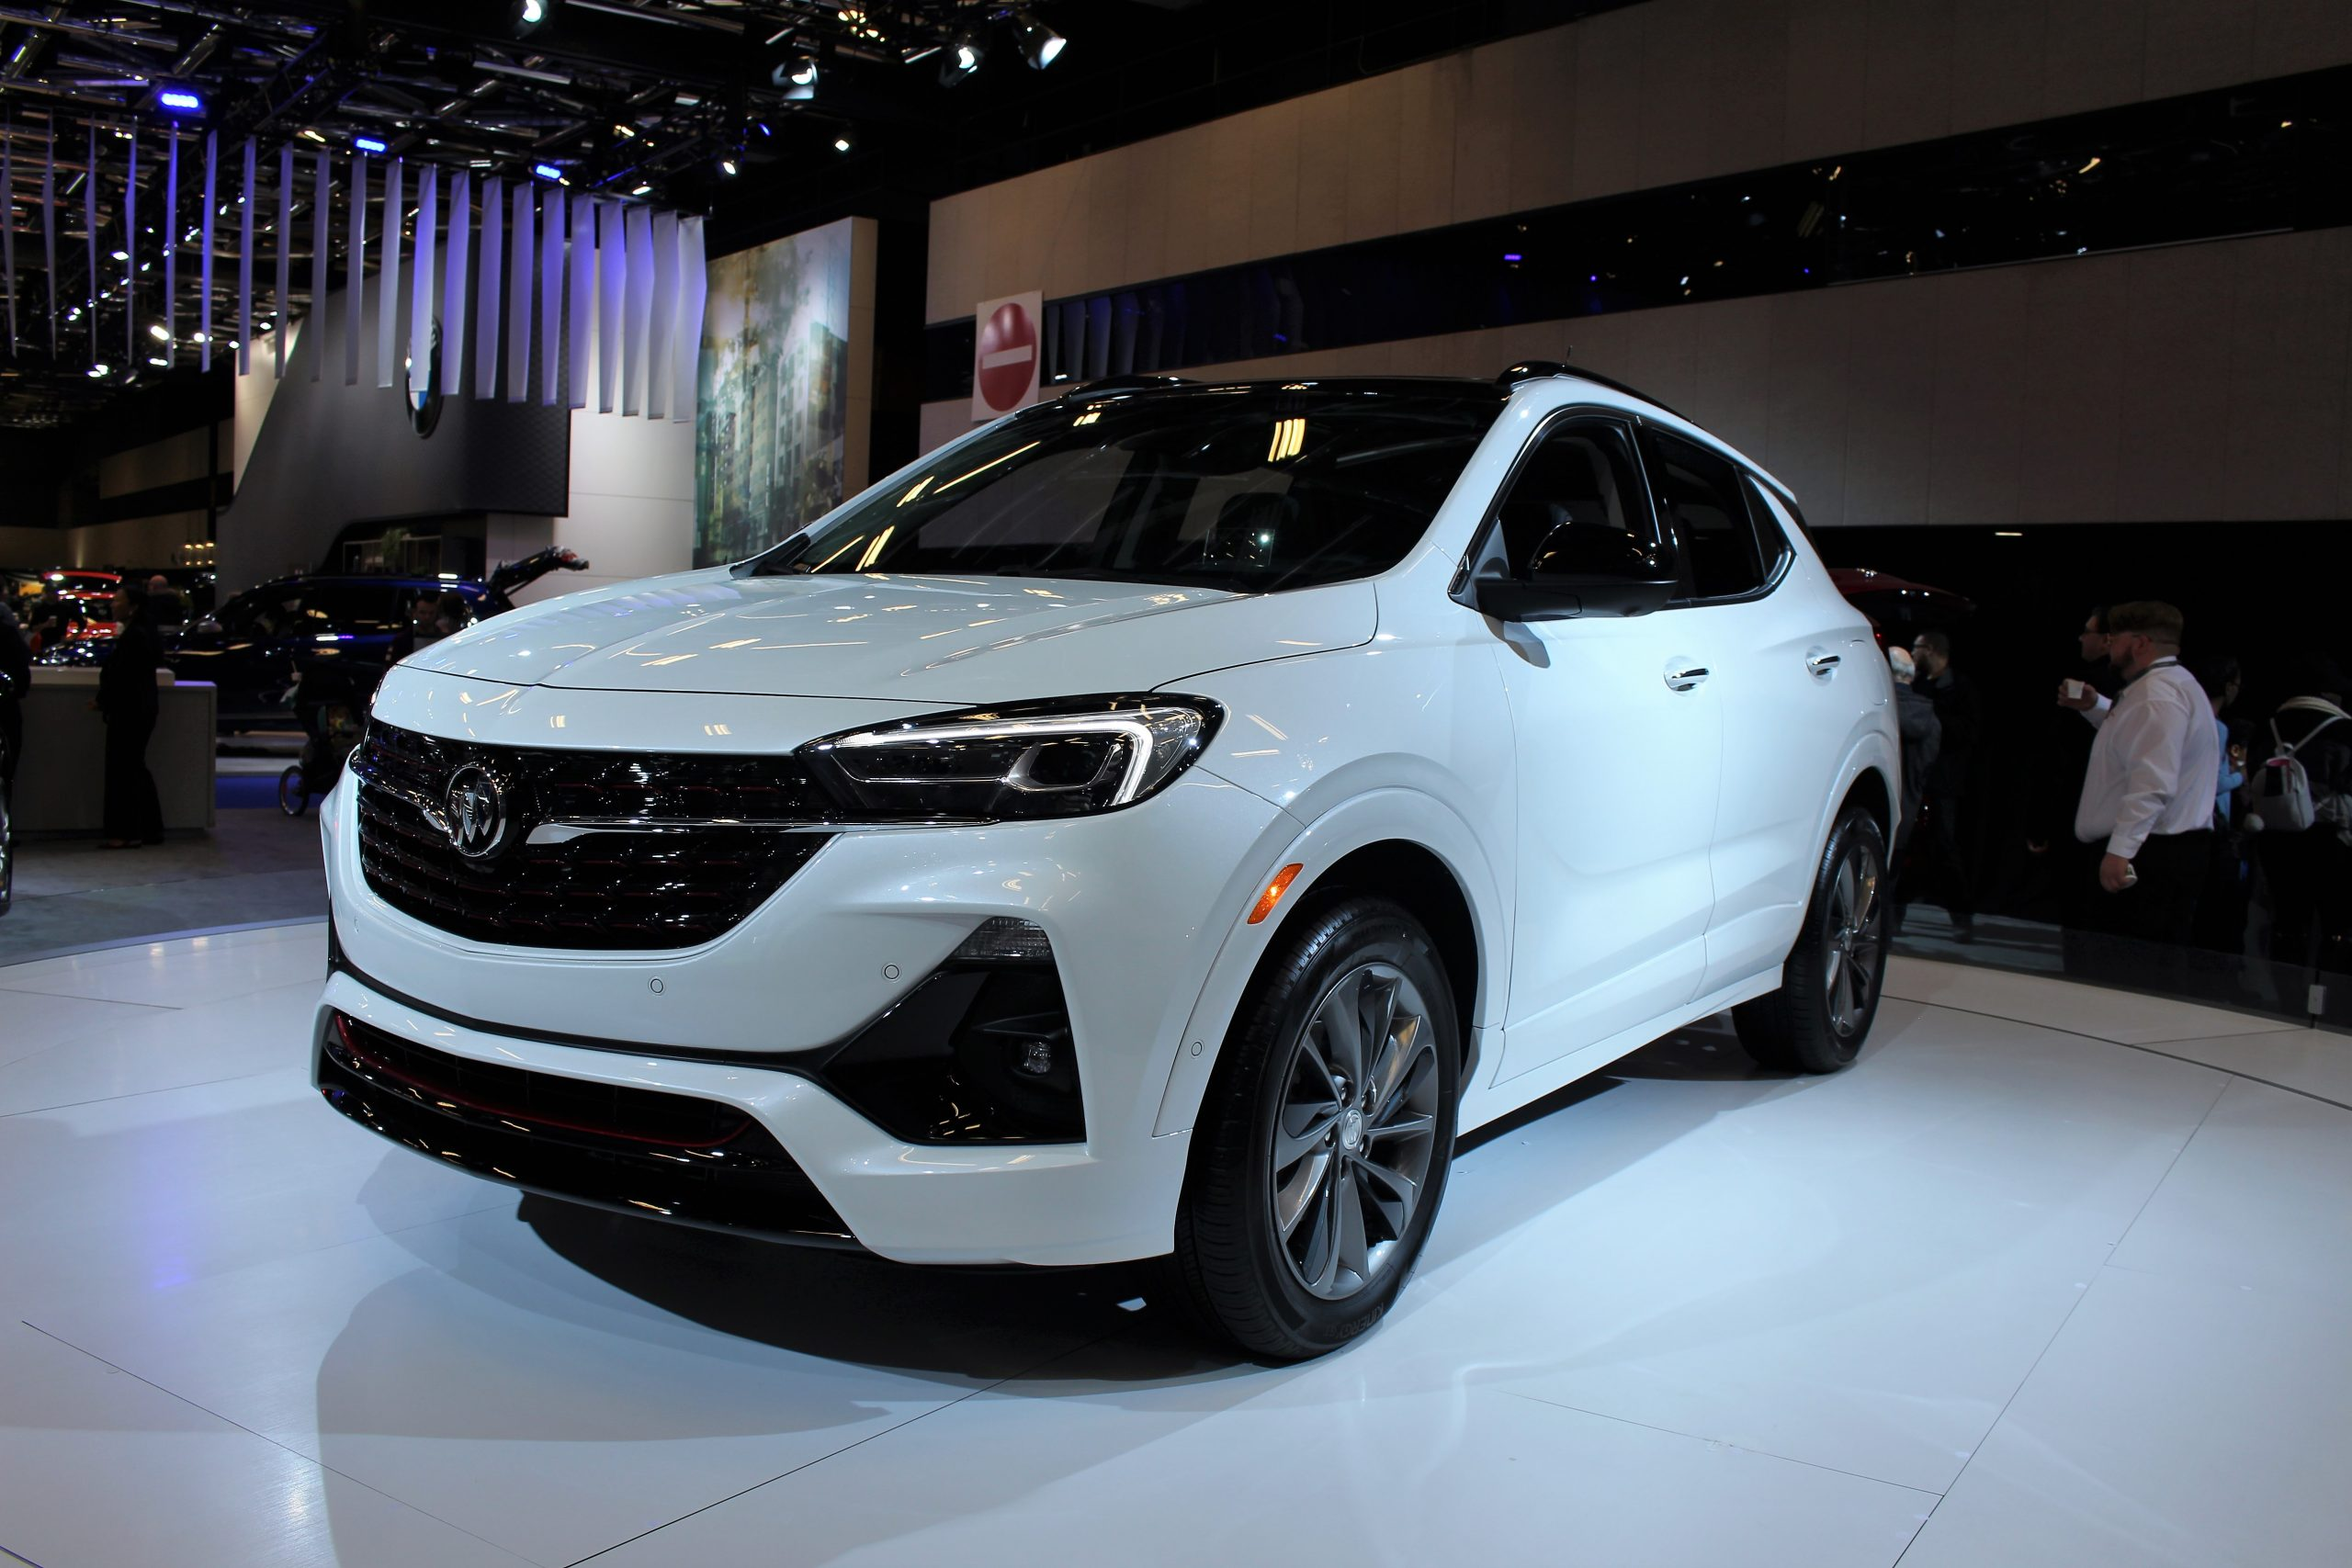 2020 Buick Encore Gx To Start At $26,098 In Canada - Motor New 2022 Buick Encore Engine Options, Features, Incentives